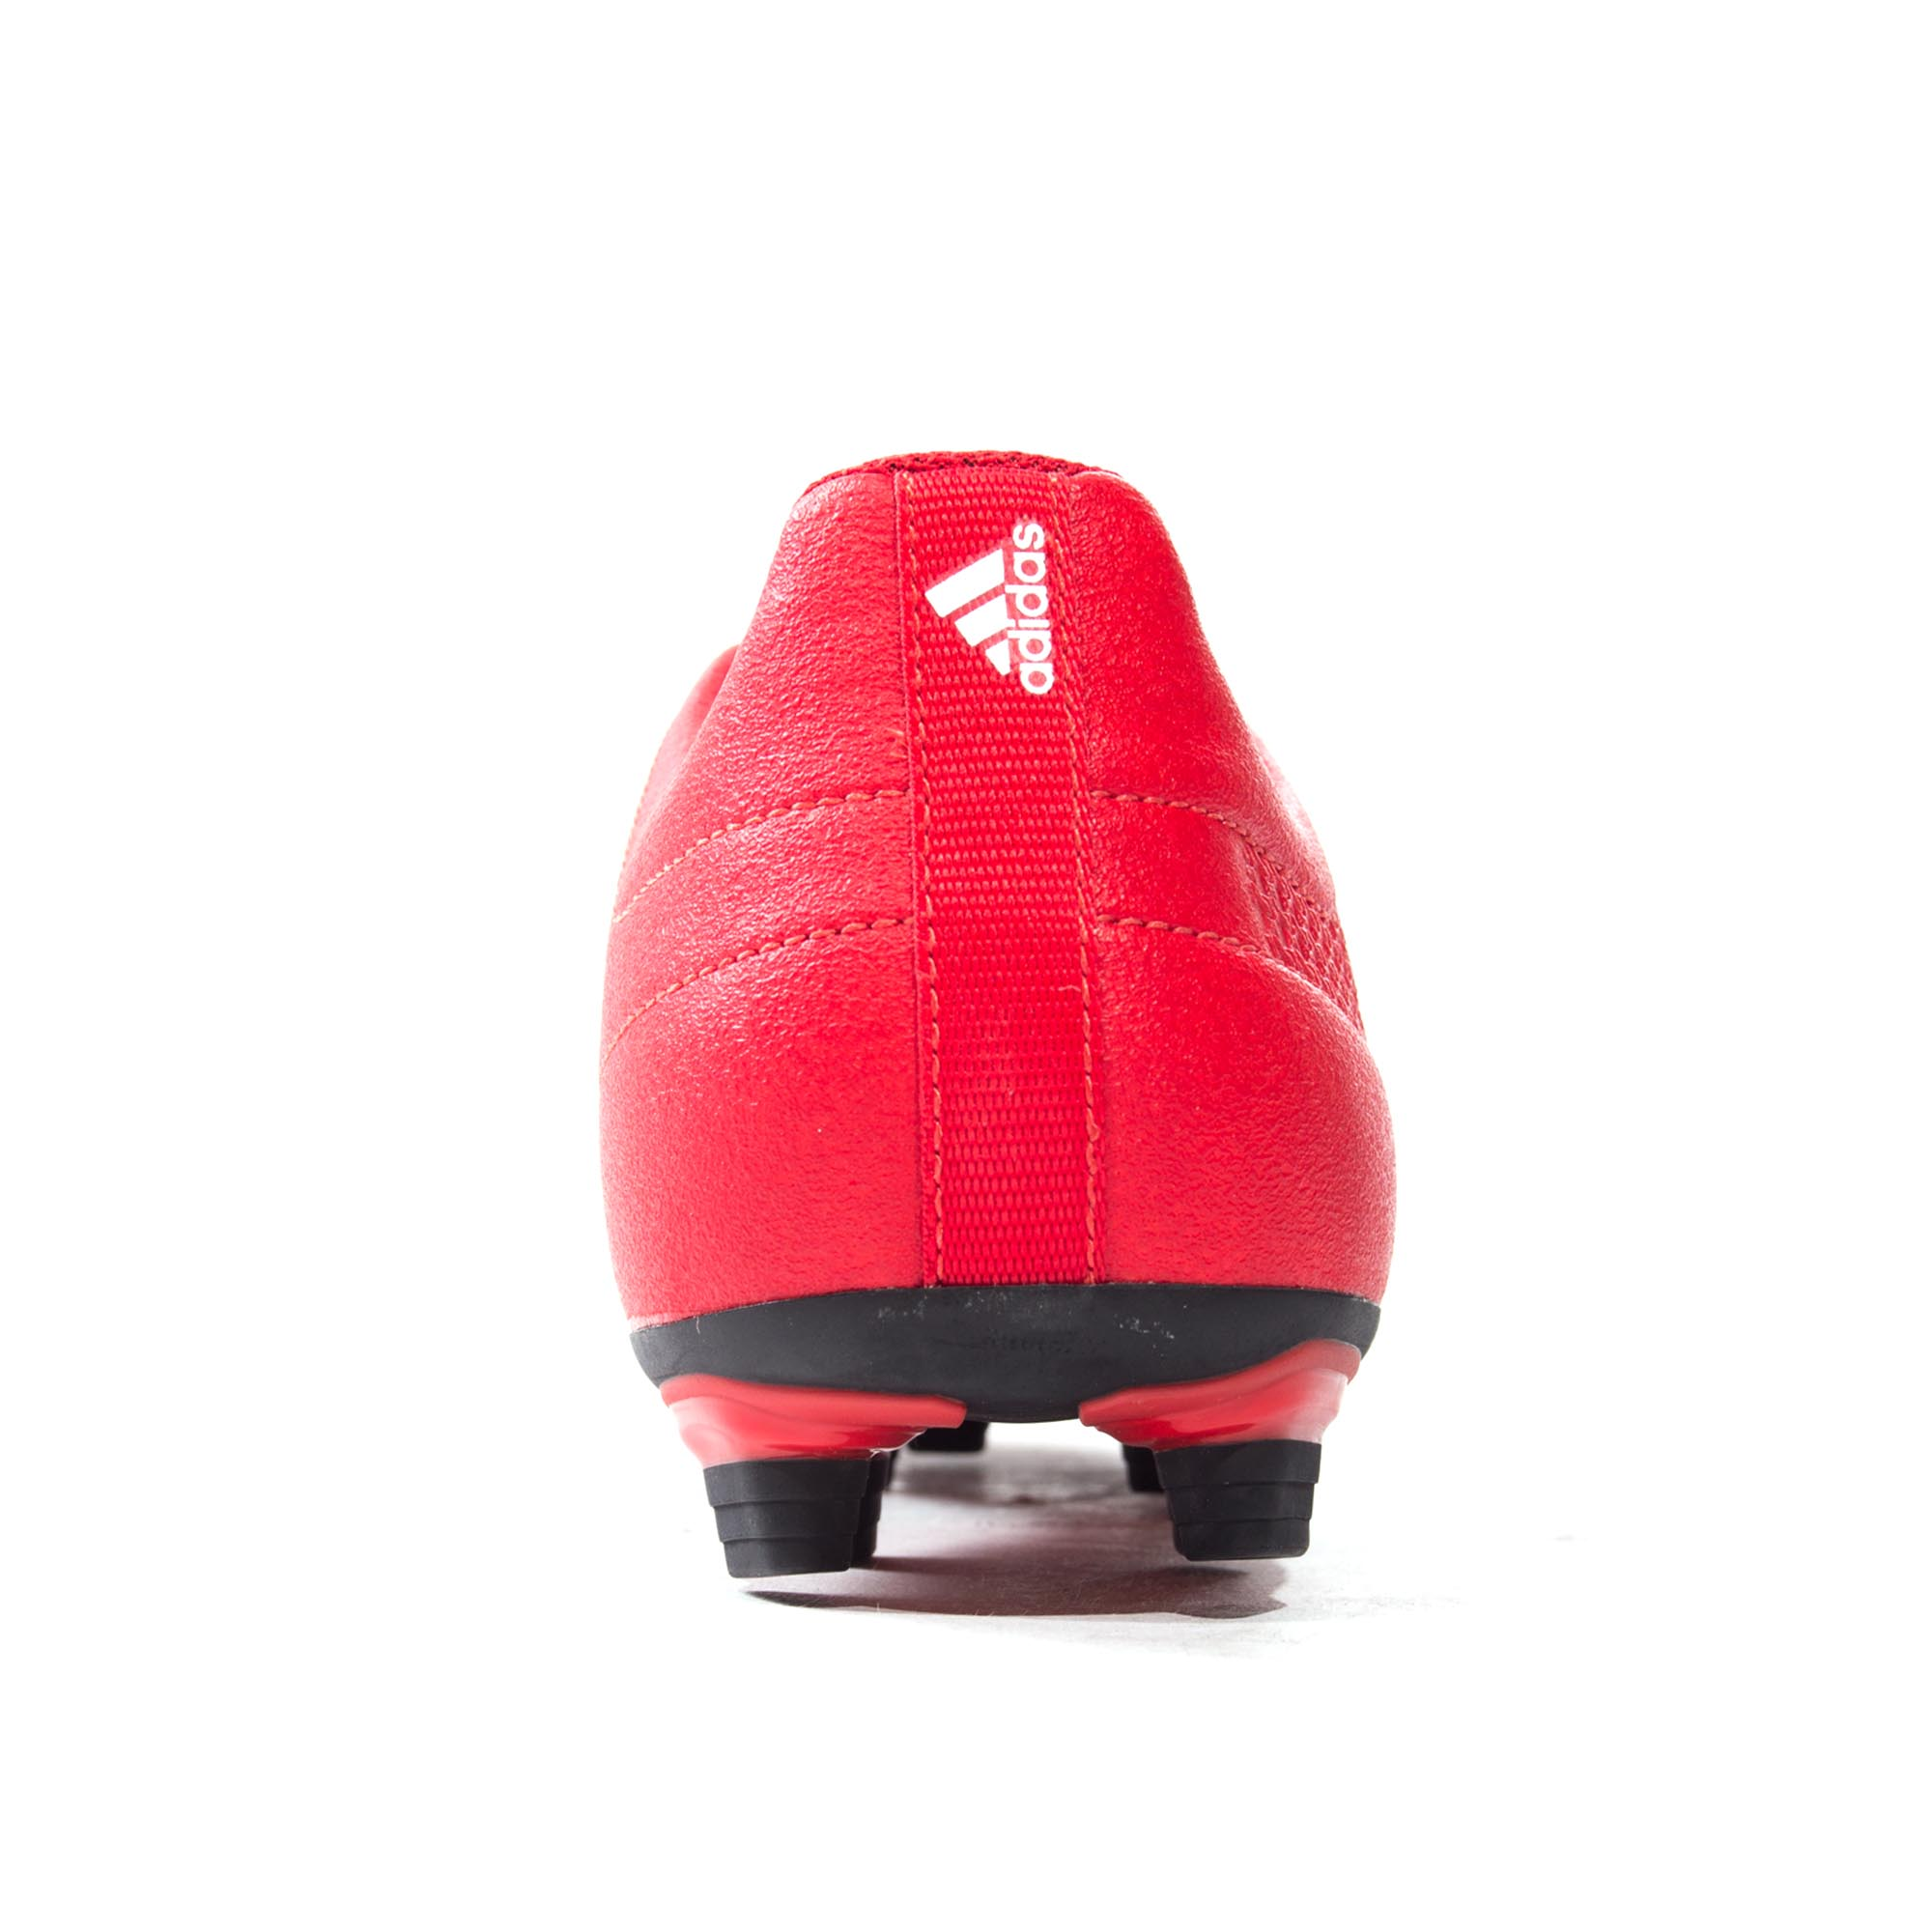 miniature 10 - ADIDAS-ACE-17-4-FG-Firm-Ground-pour-homme-Football-Boot-Noir-Rouge